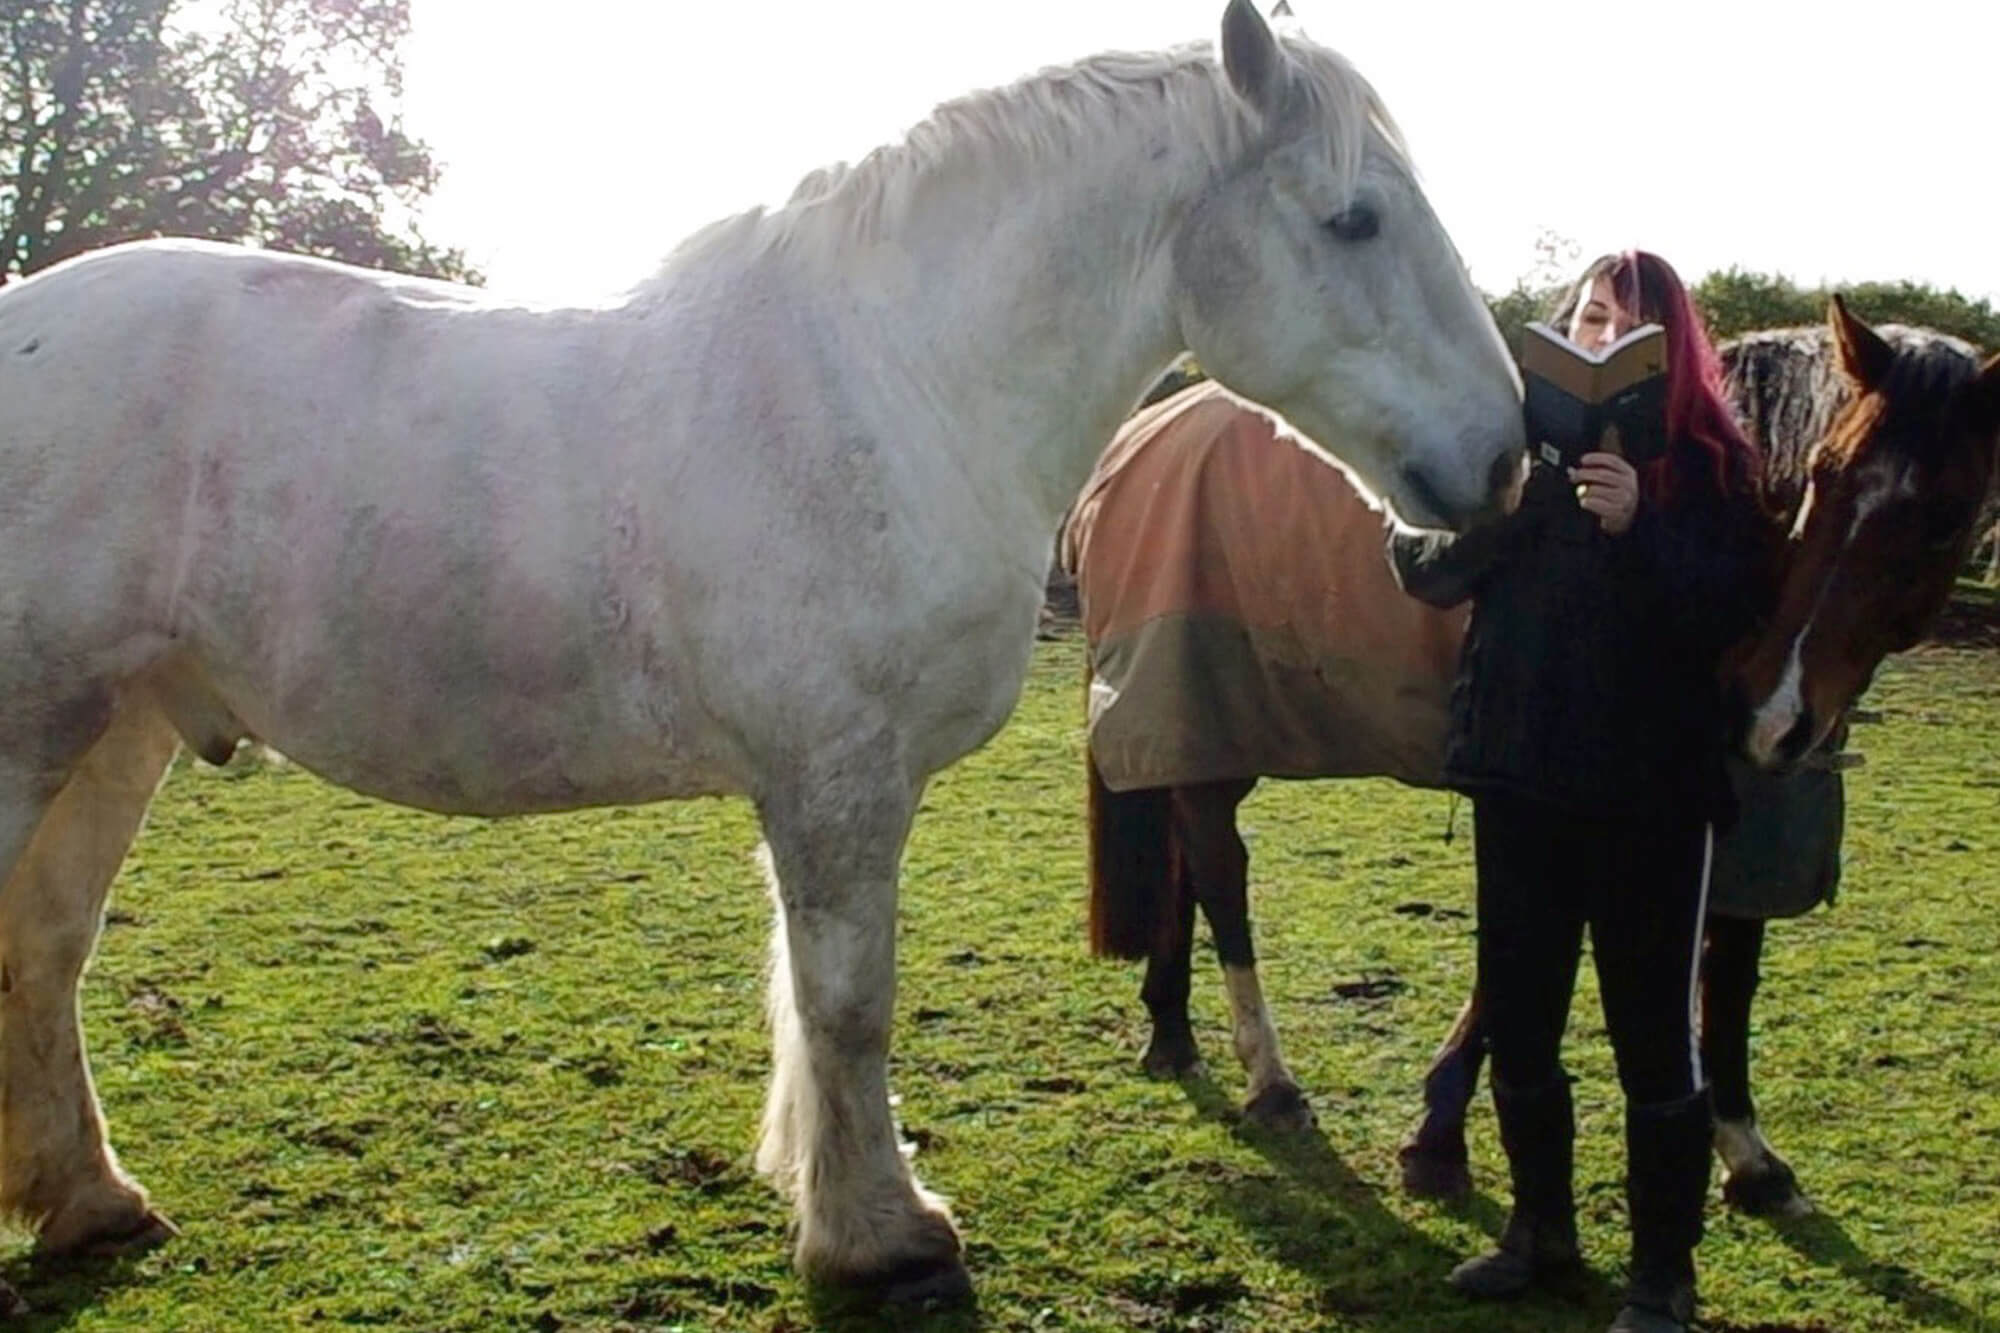 Ang Bartram standing next to two horses in a field, holding an open book.